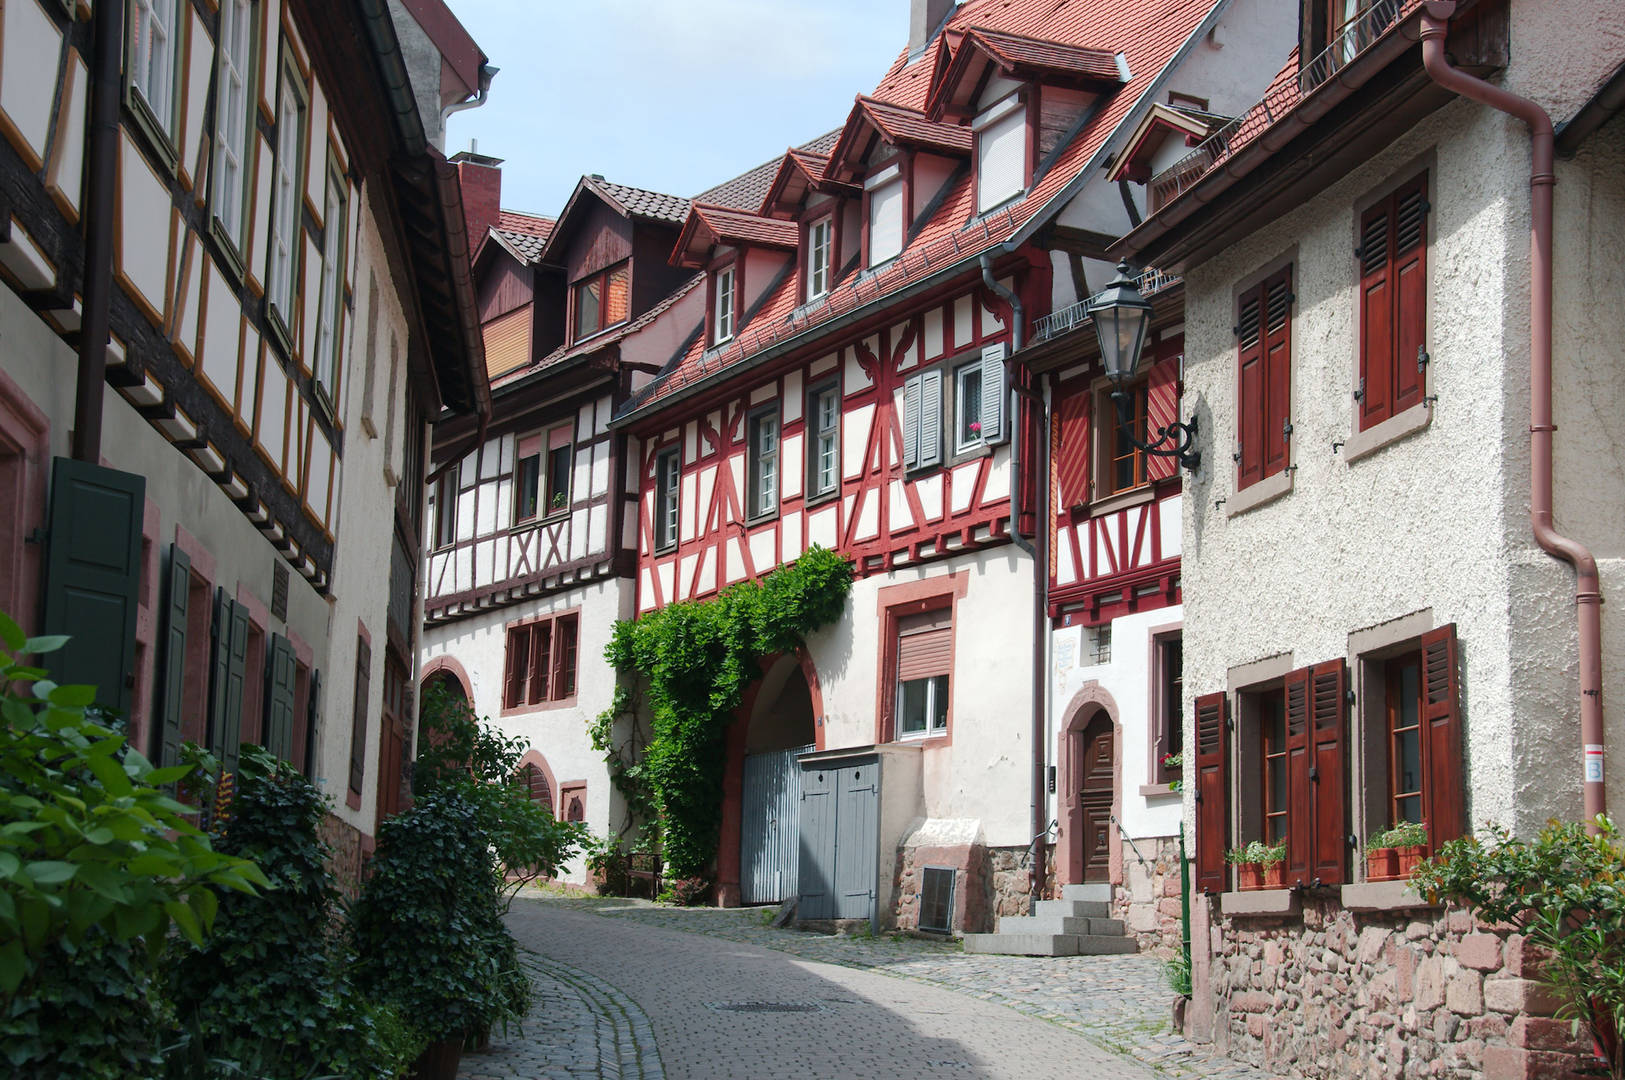 Half-timbered buildings in Rüdesheim